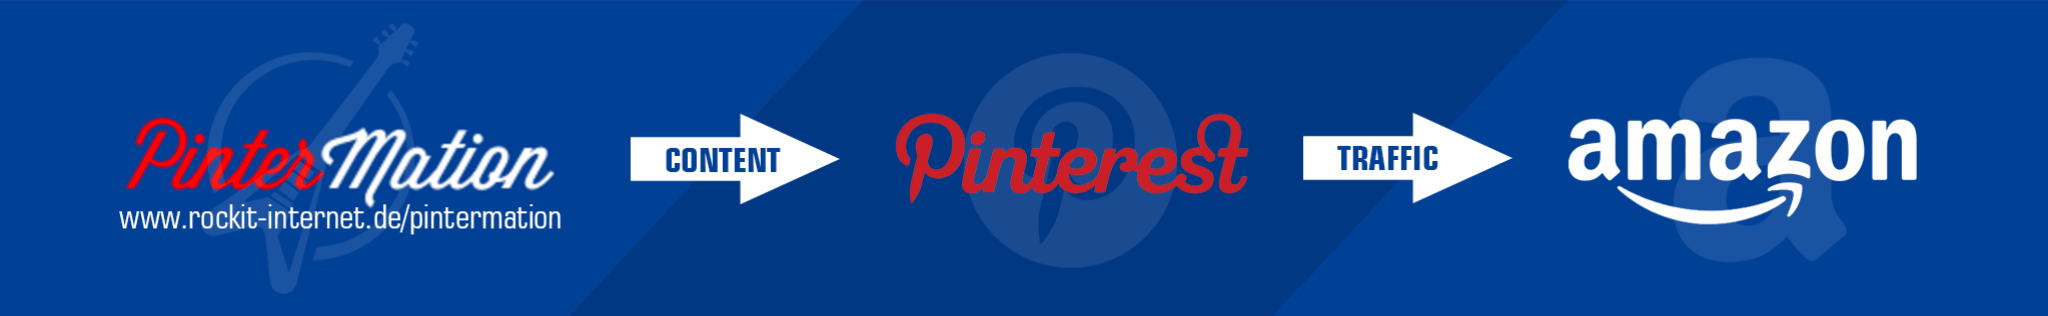 PinterMation Tool - generation Traffic - Pinterest to Amazon